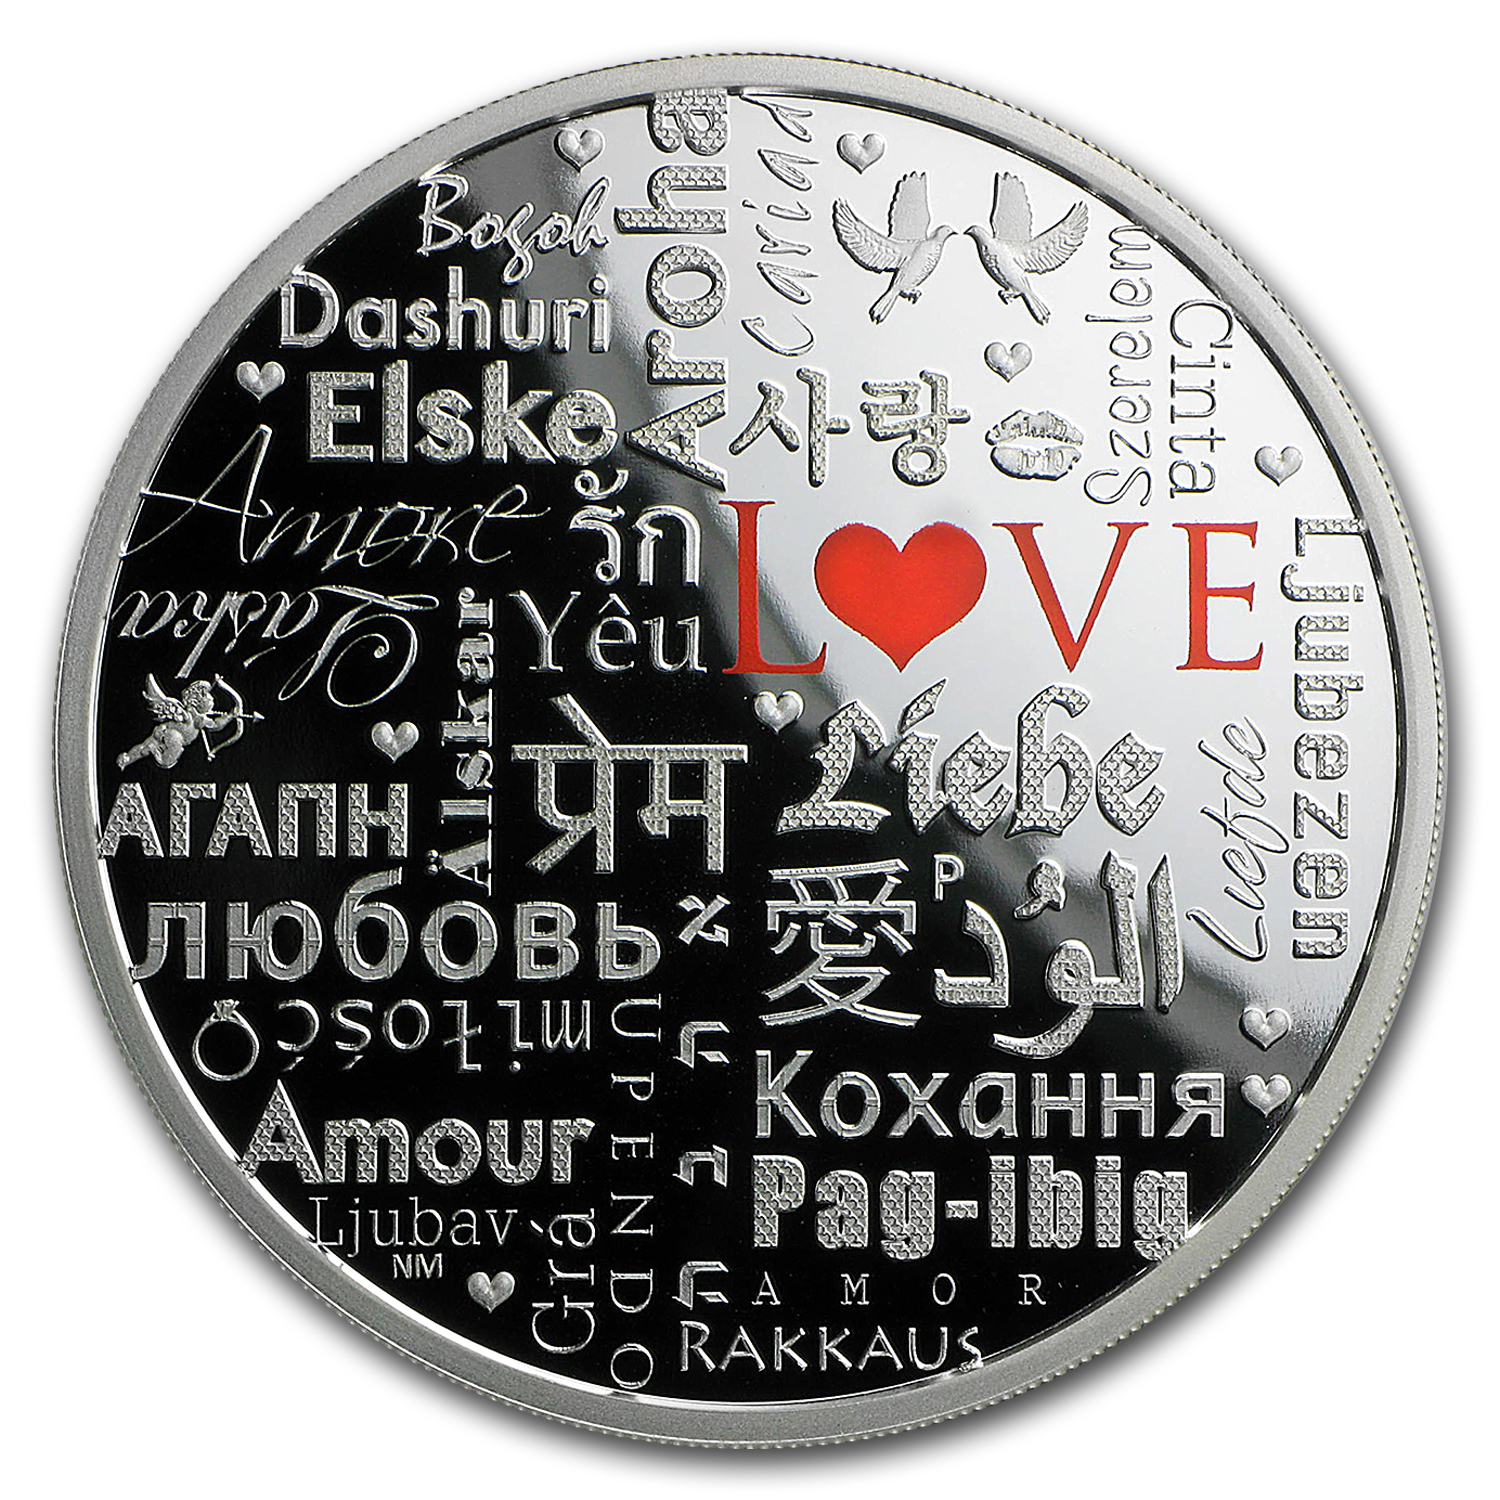 2016 Australia 2 oz Silver Proof Language of Love